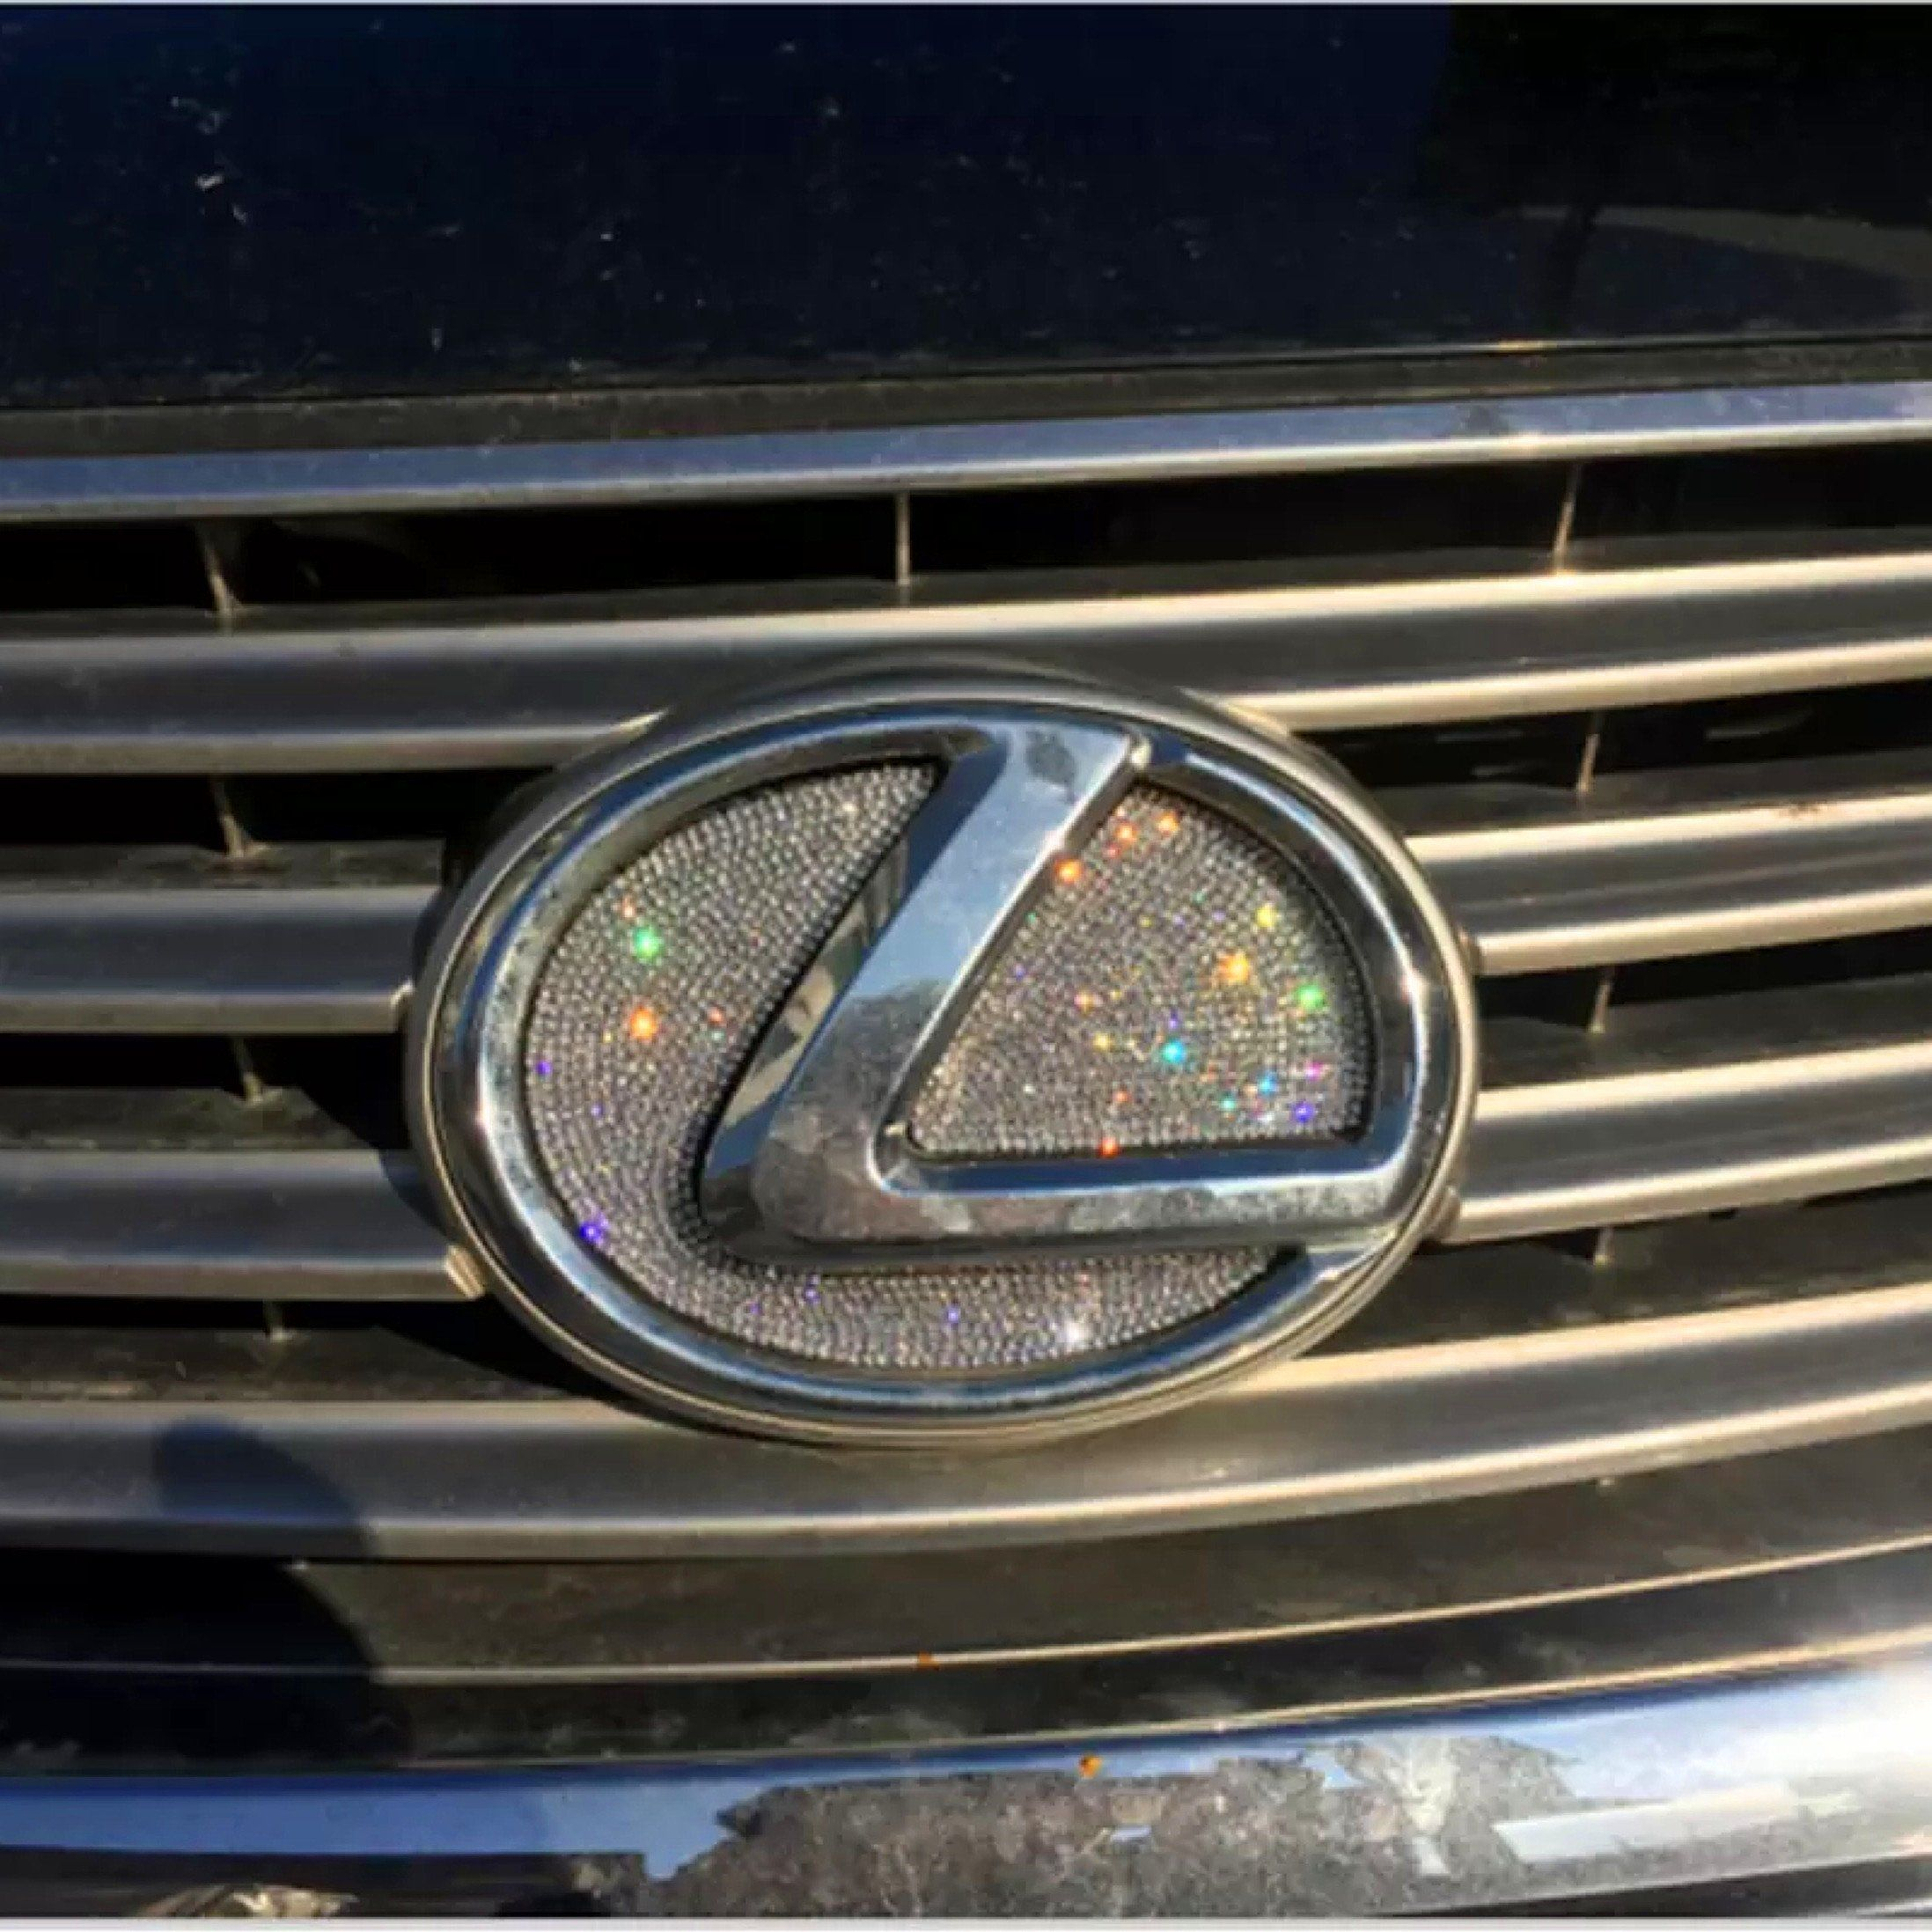 Bling Toyota Logo Front Or Rear Grille Emblem Decal Made W Rhinestone Crystals Bling Car Accessories Toyota Logo Toyota Accessories [ 1440 x 1080 Pixel ]